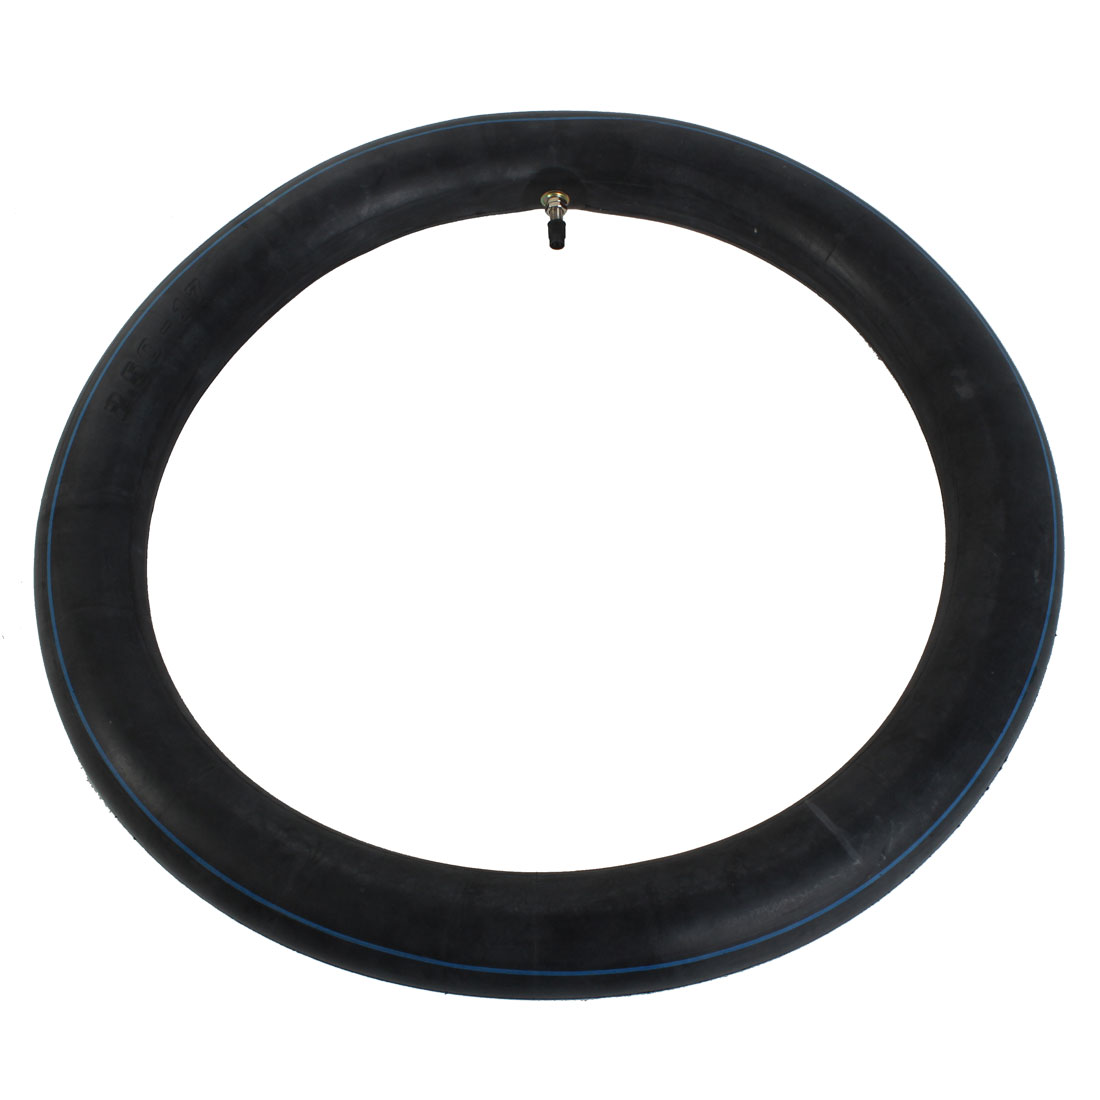 Unique Bargains Motorcycle Motorbike Black Rubber Inner Tire Tube 250-17